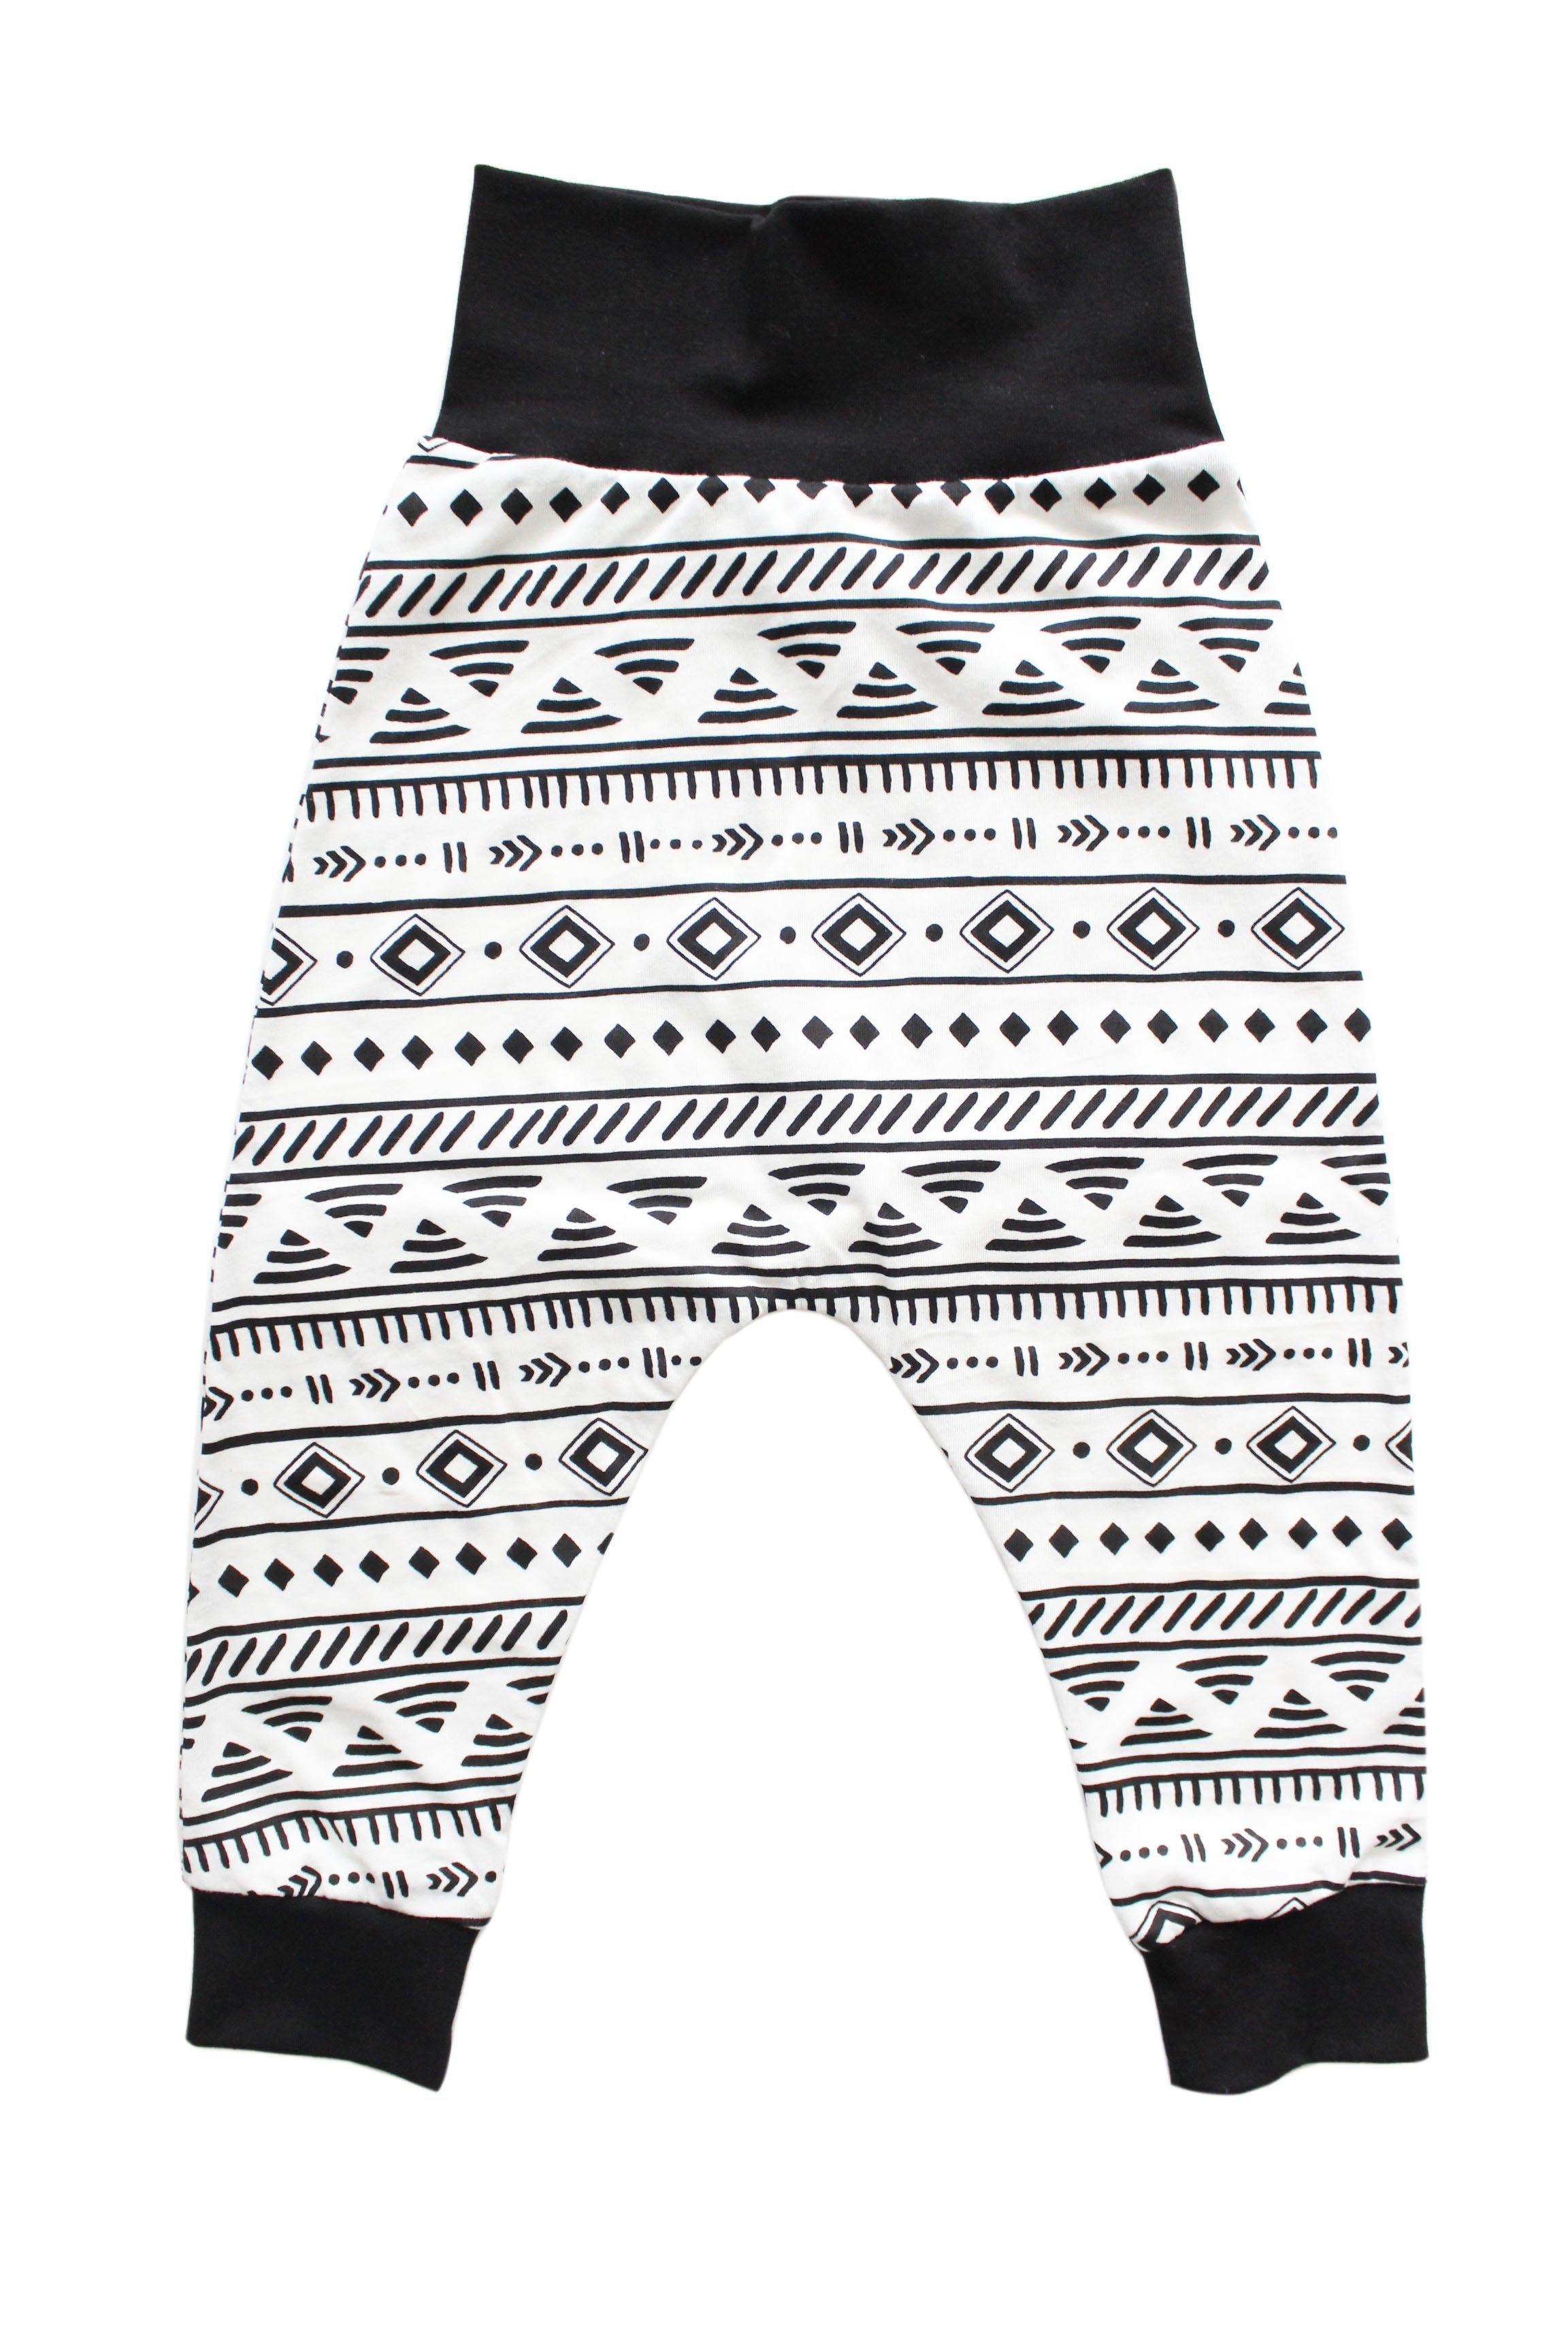 Raven Black Tribal Harems